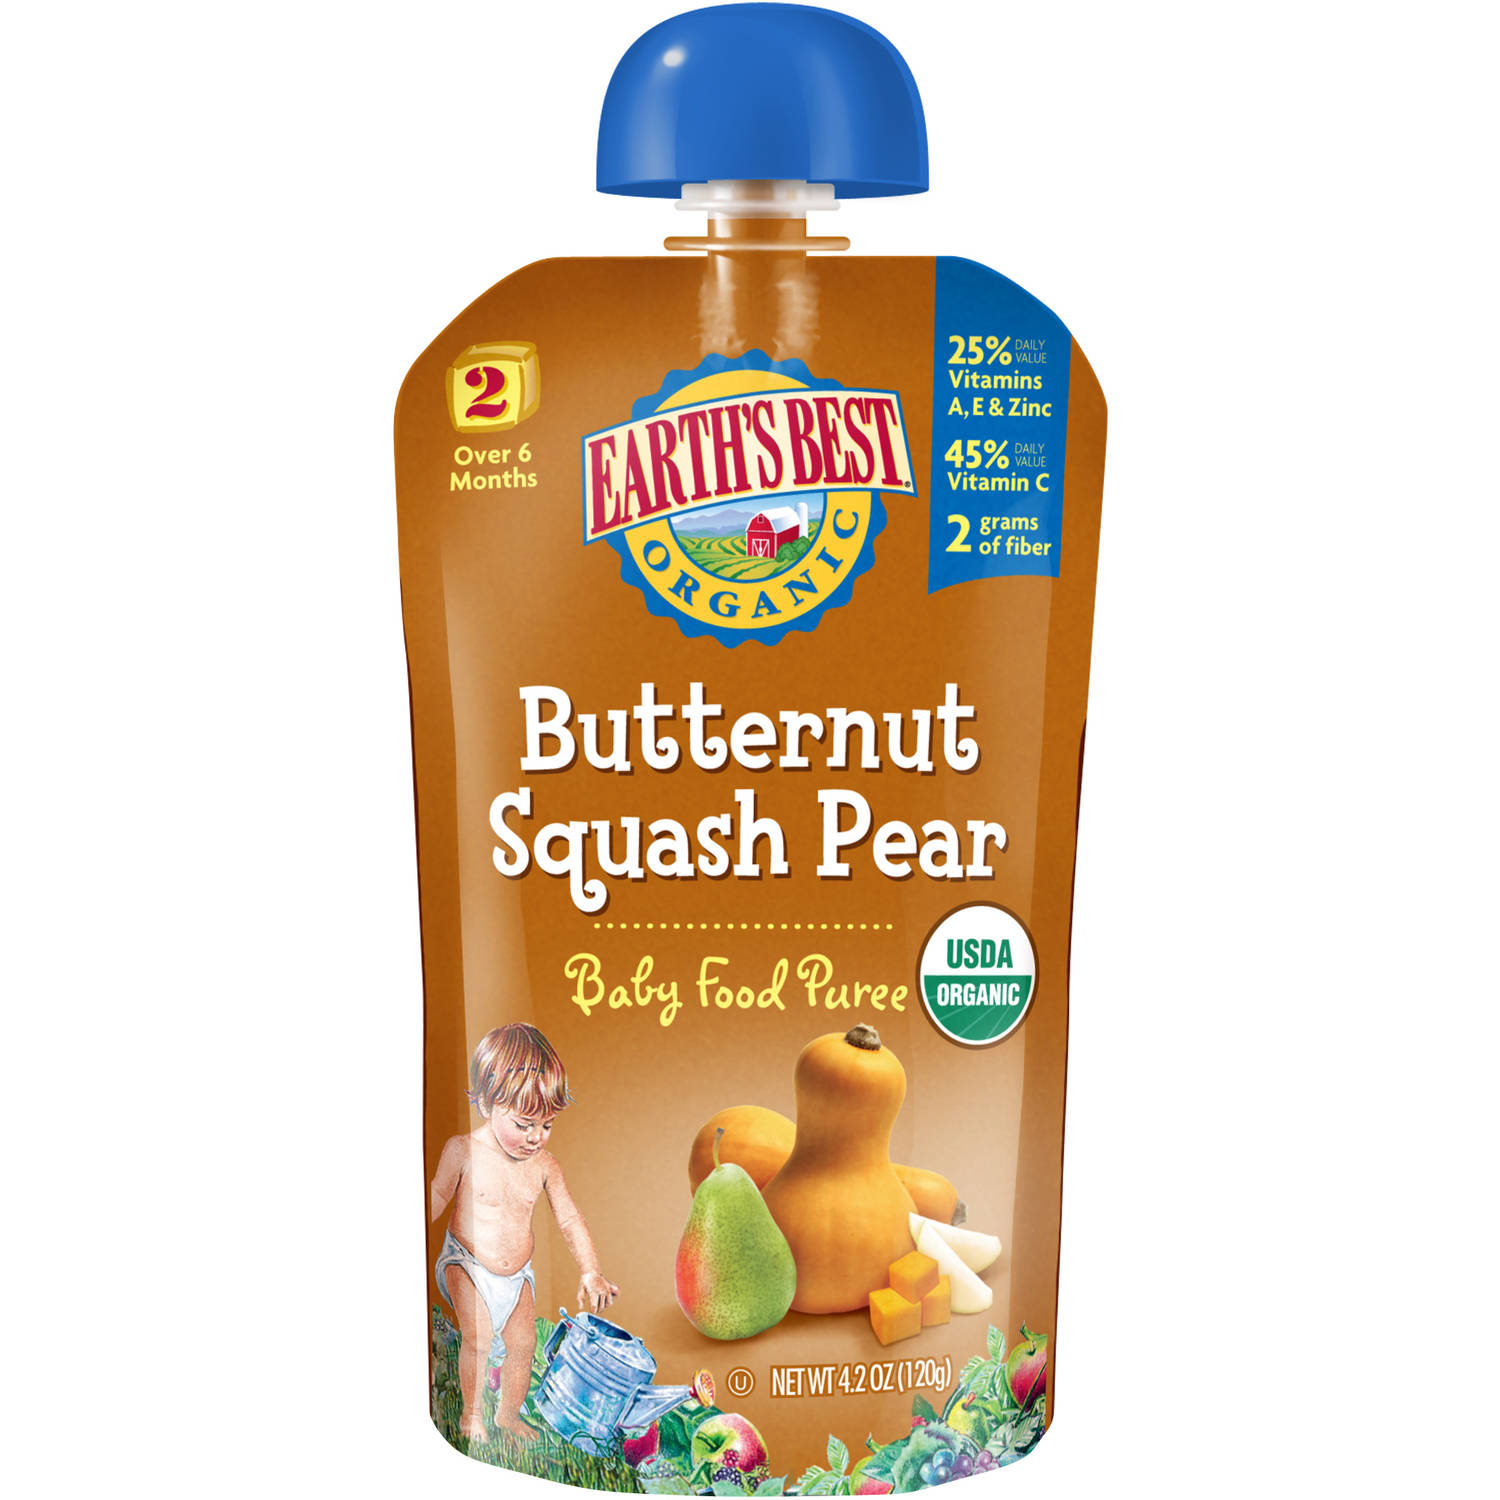 Earth's Best Second Foods Butternut Squash Pear Baby Food Puree, 4 oz